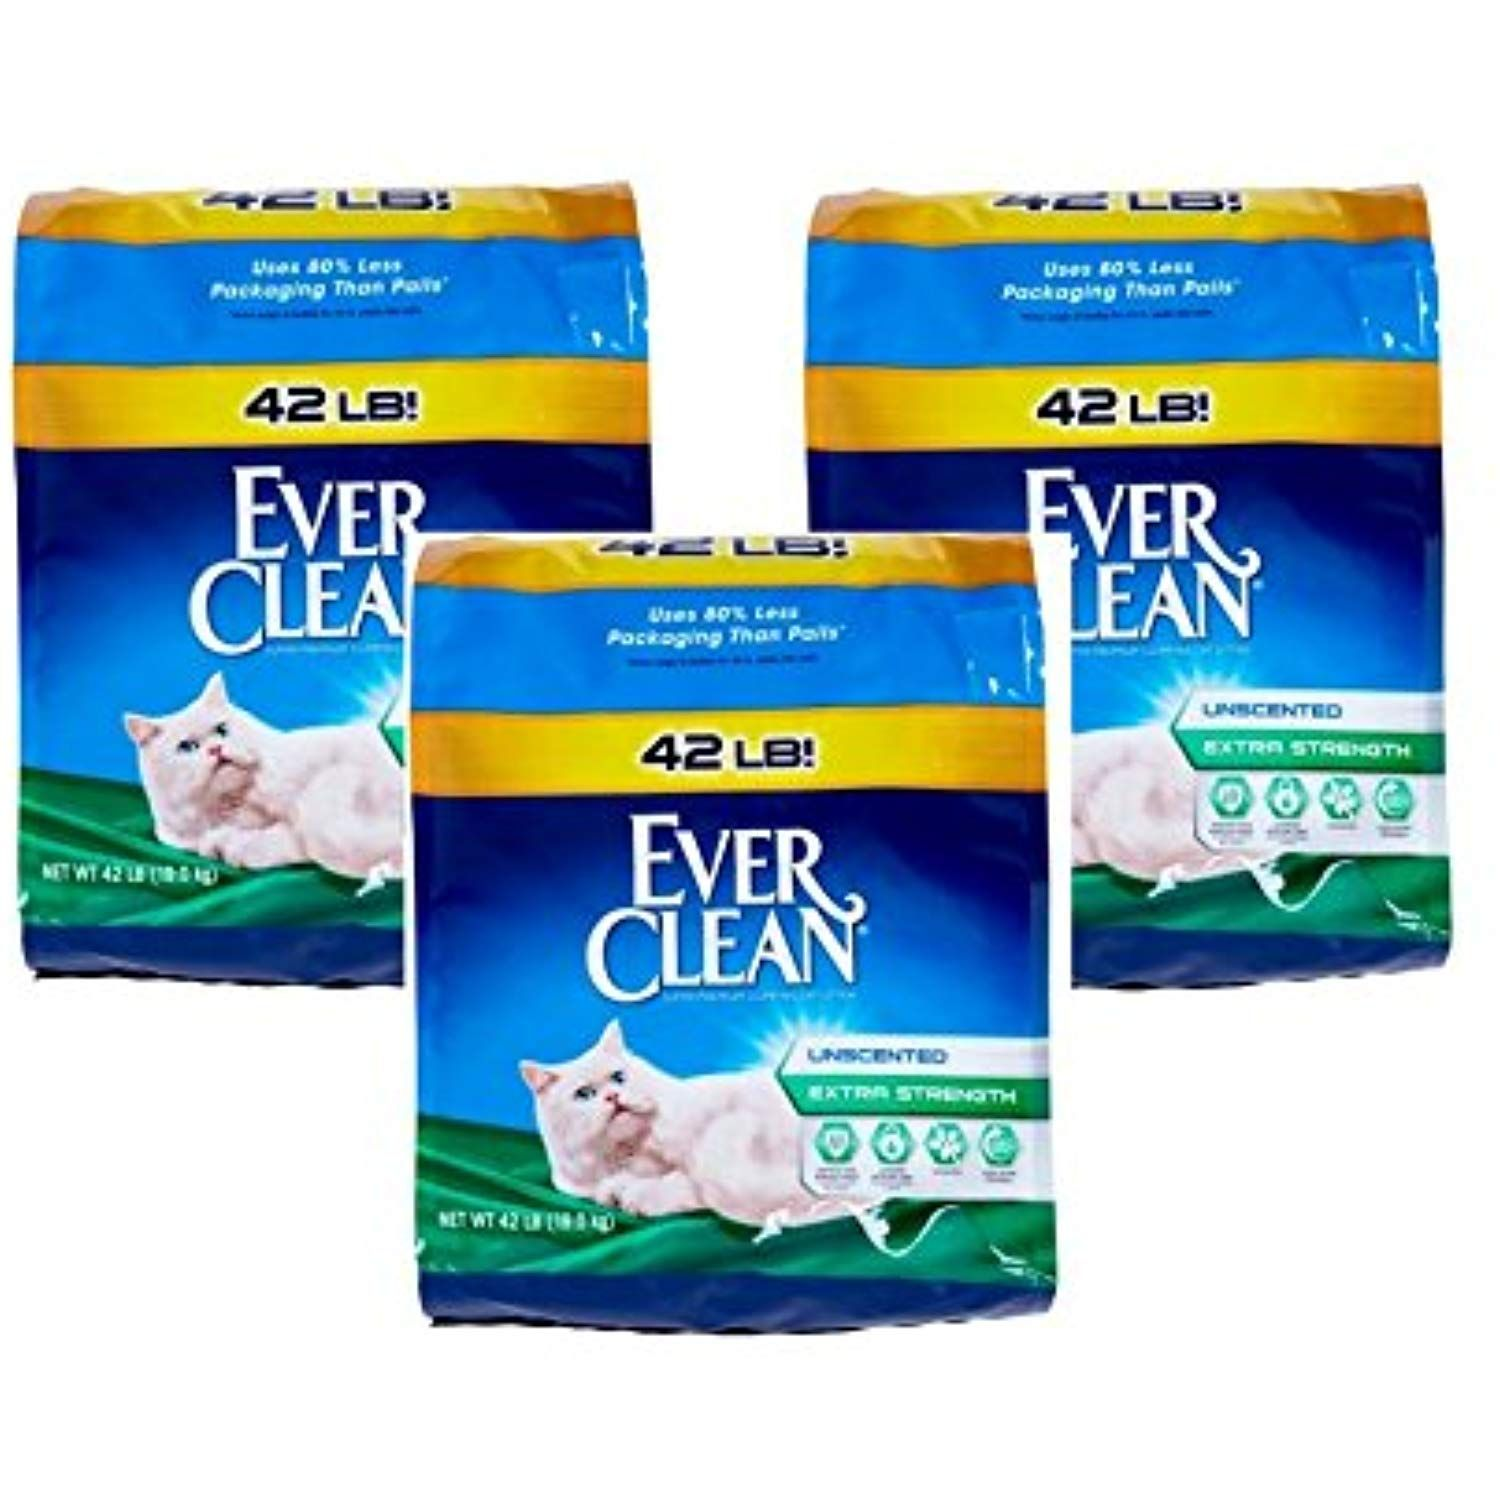 Ever Clean Extra Strength Cat Litter, Unscented (42 Pounds